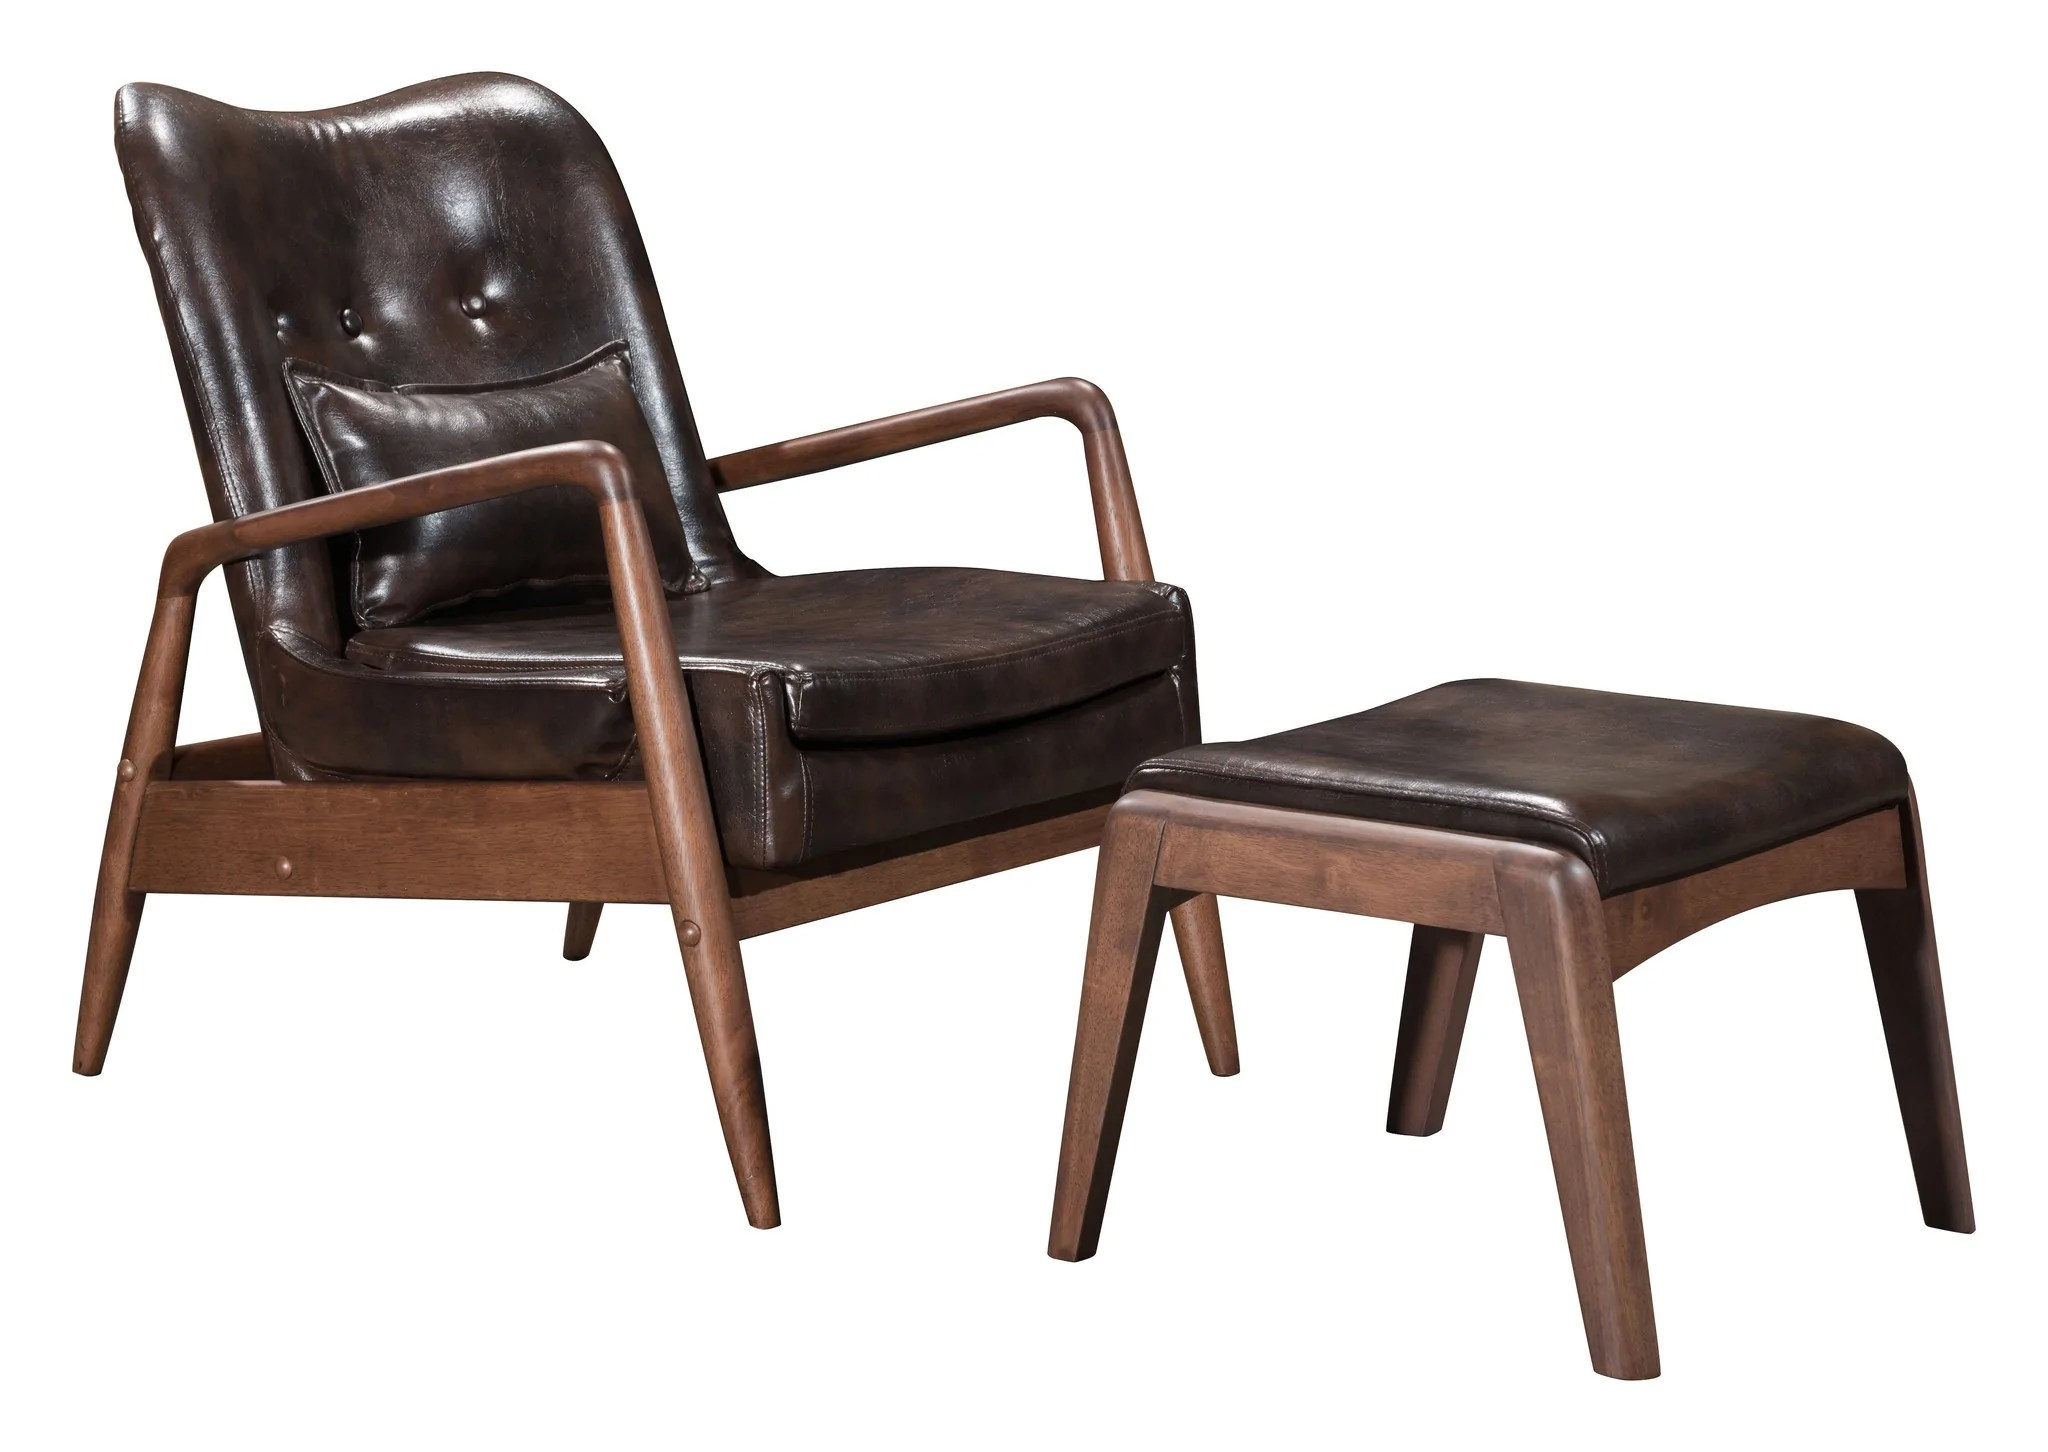 tufted chair and ottoman best toddler bully lounge set in brown leatherette on wood f frame chairs